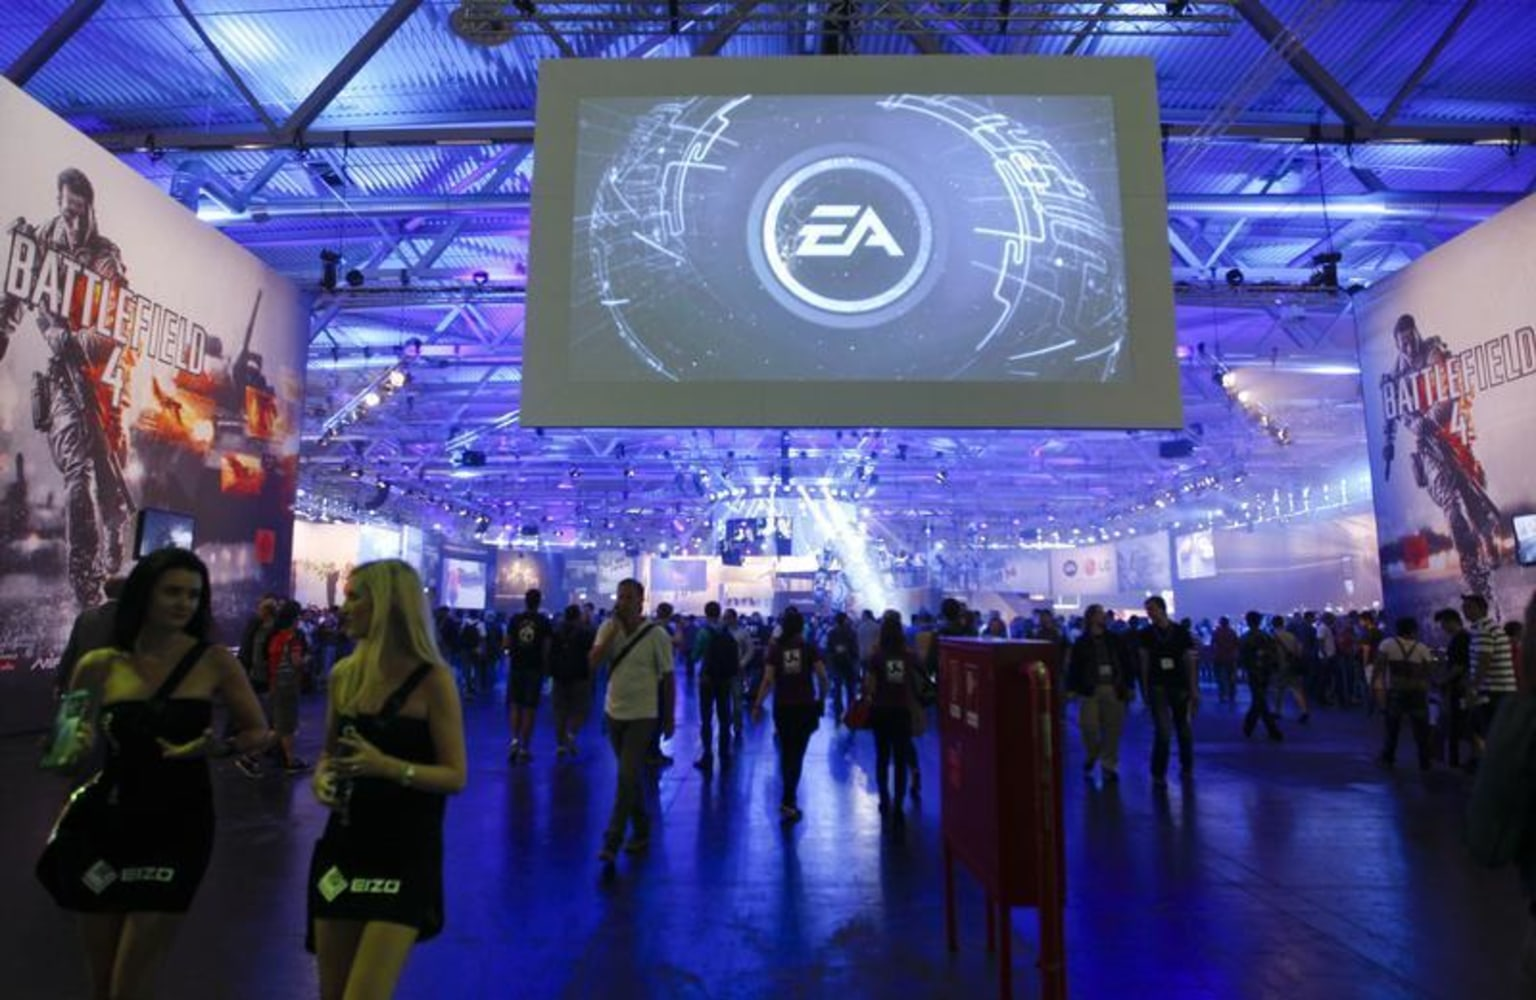 'Battlefield 4' glitches take toll on Electronic Arts